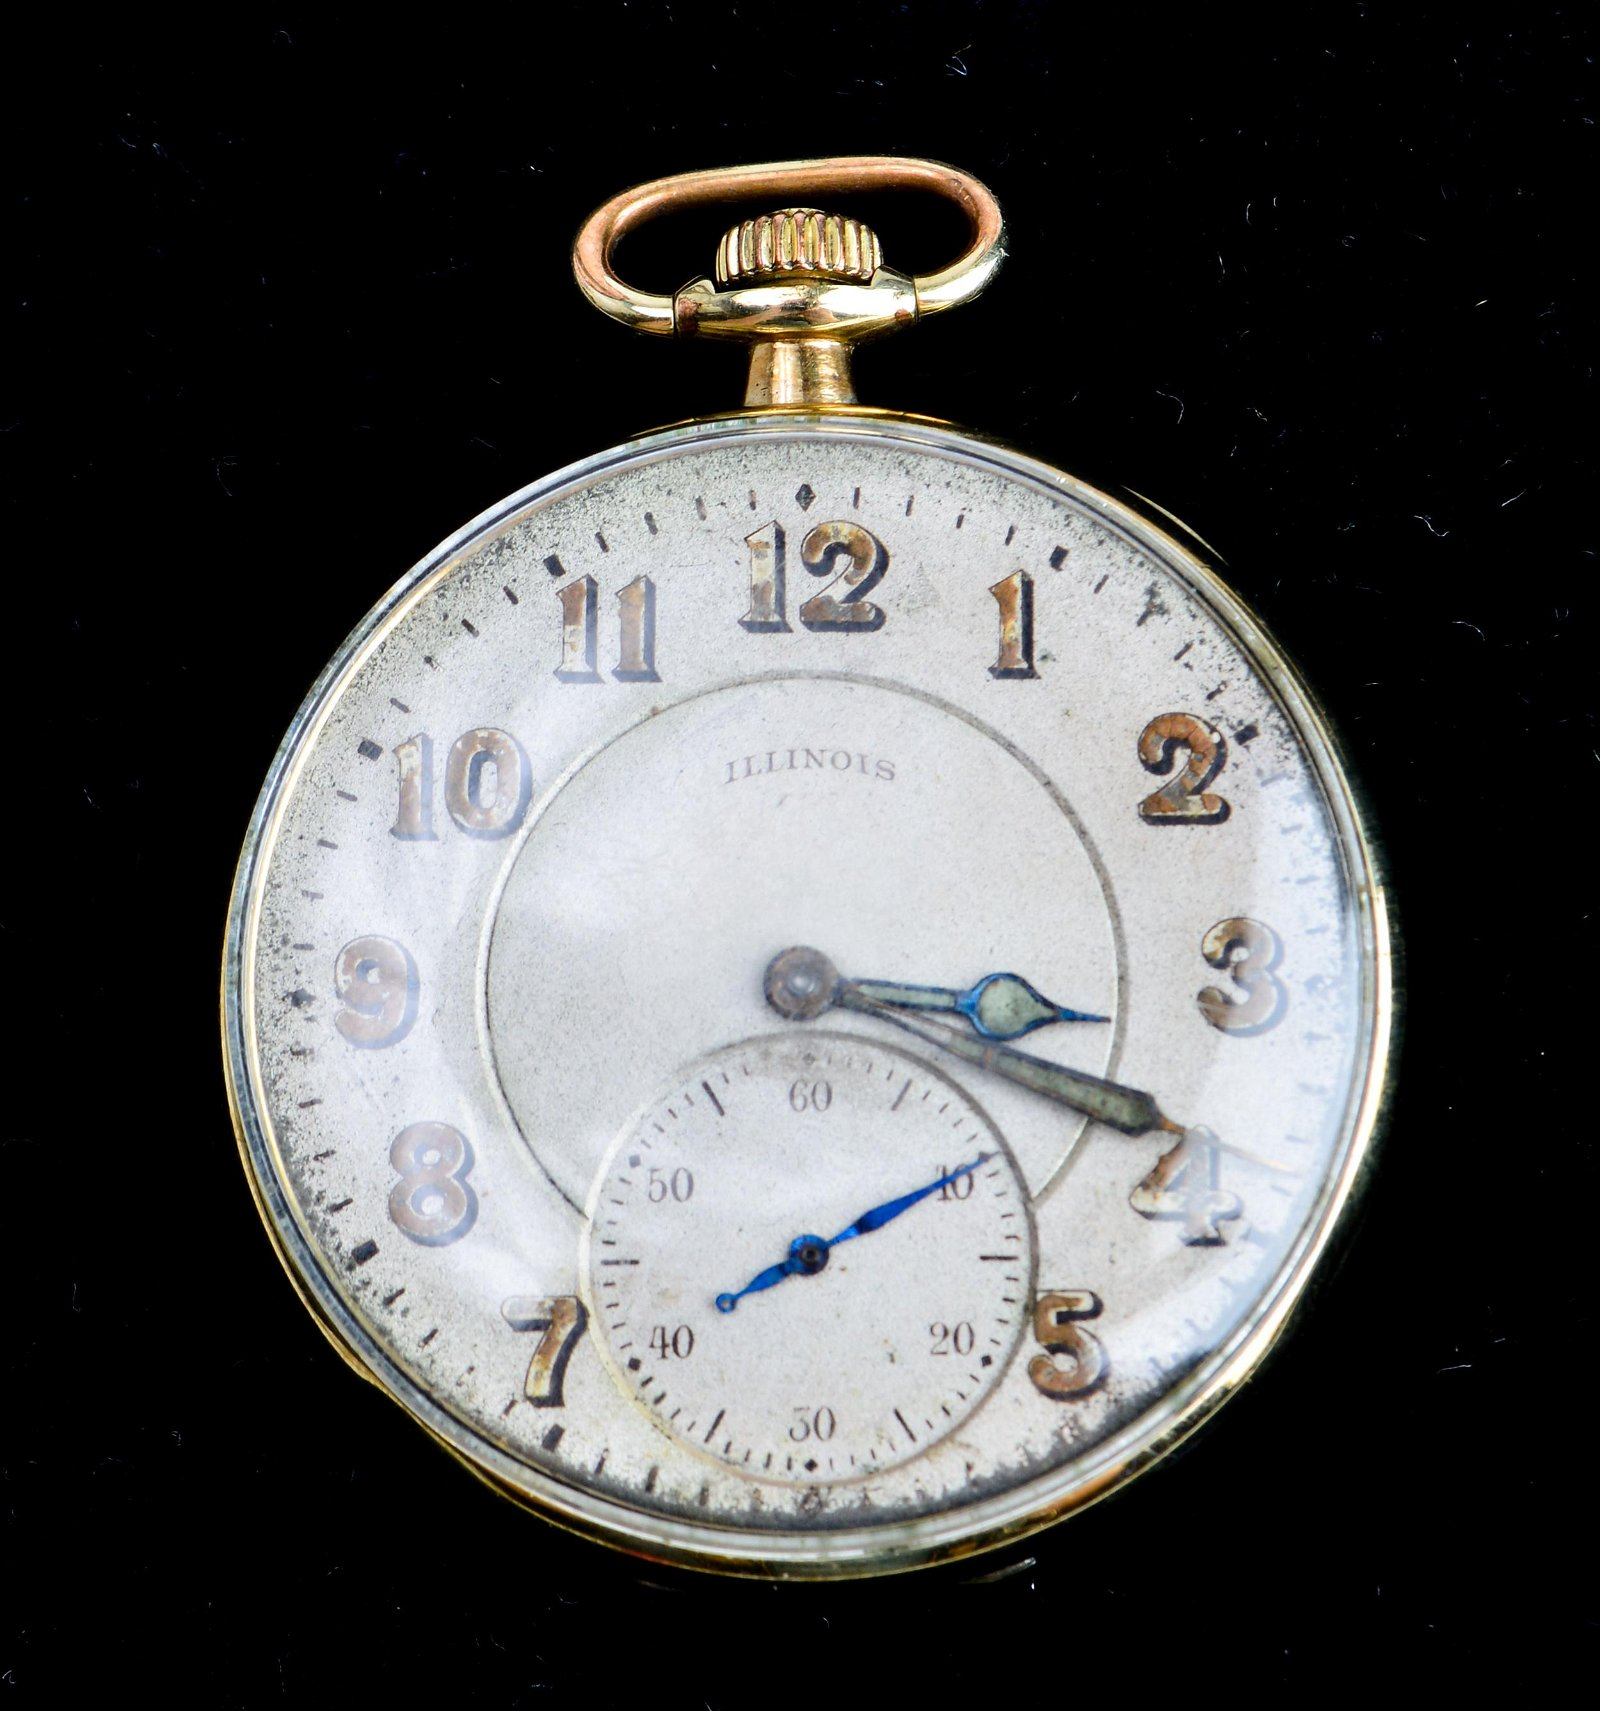 Illinois Springfield Co. Gold-Filled Pocket Watch